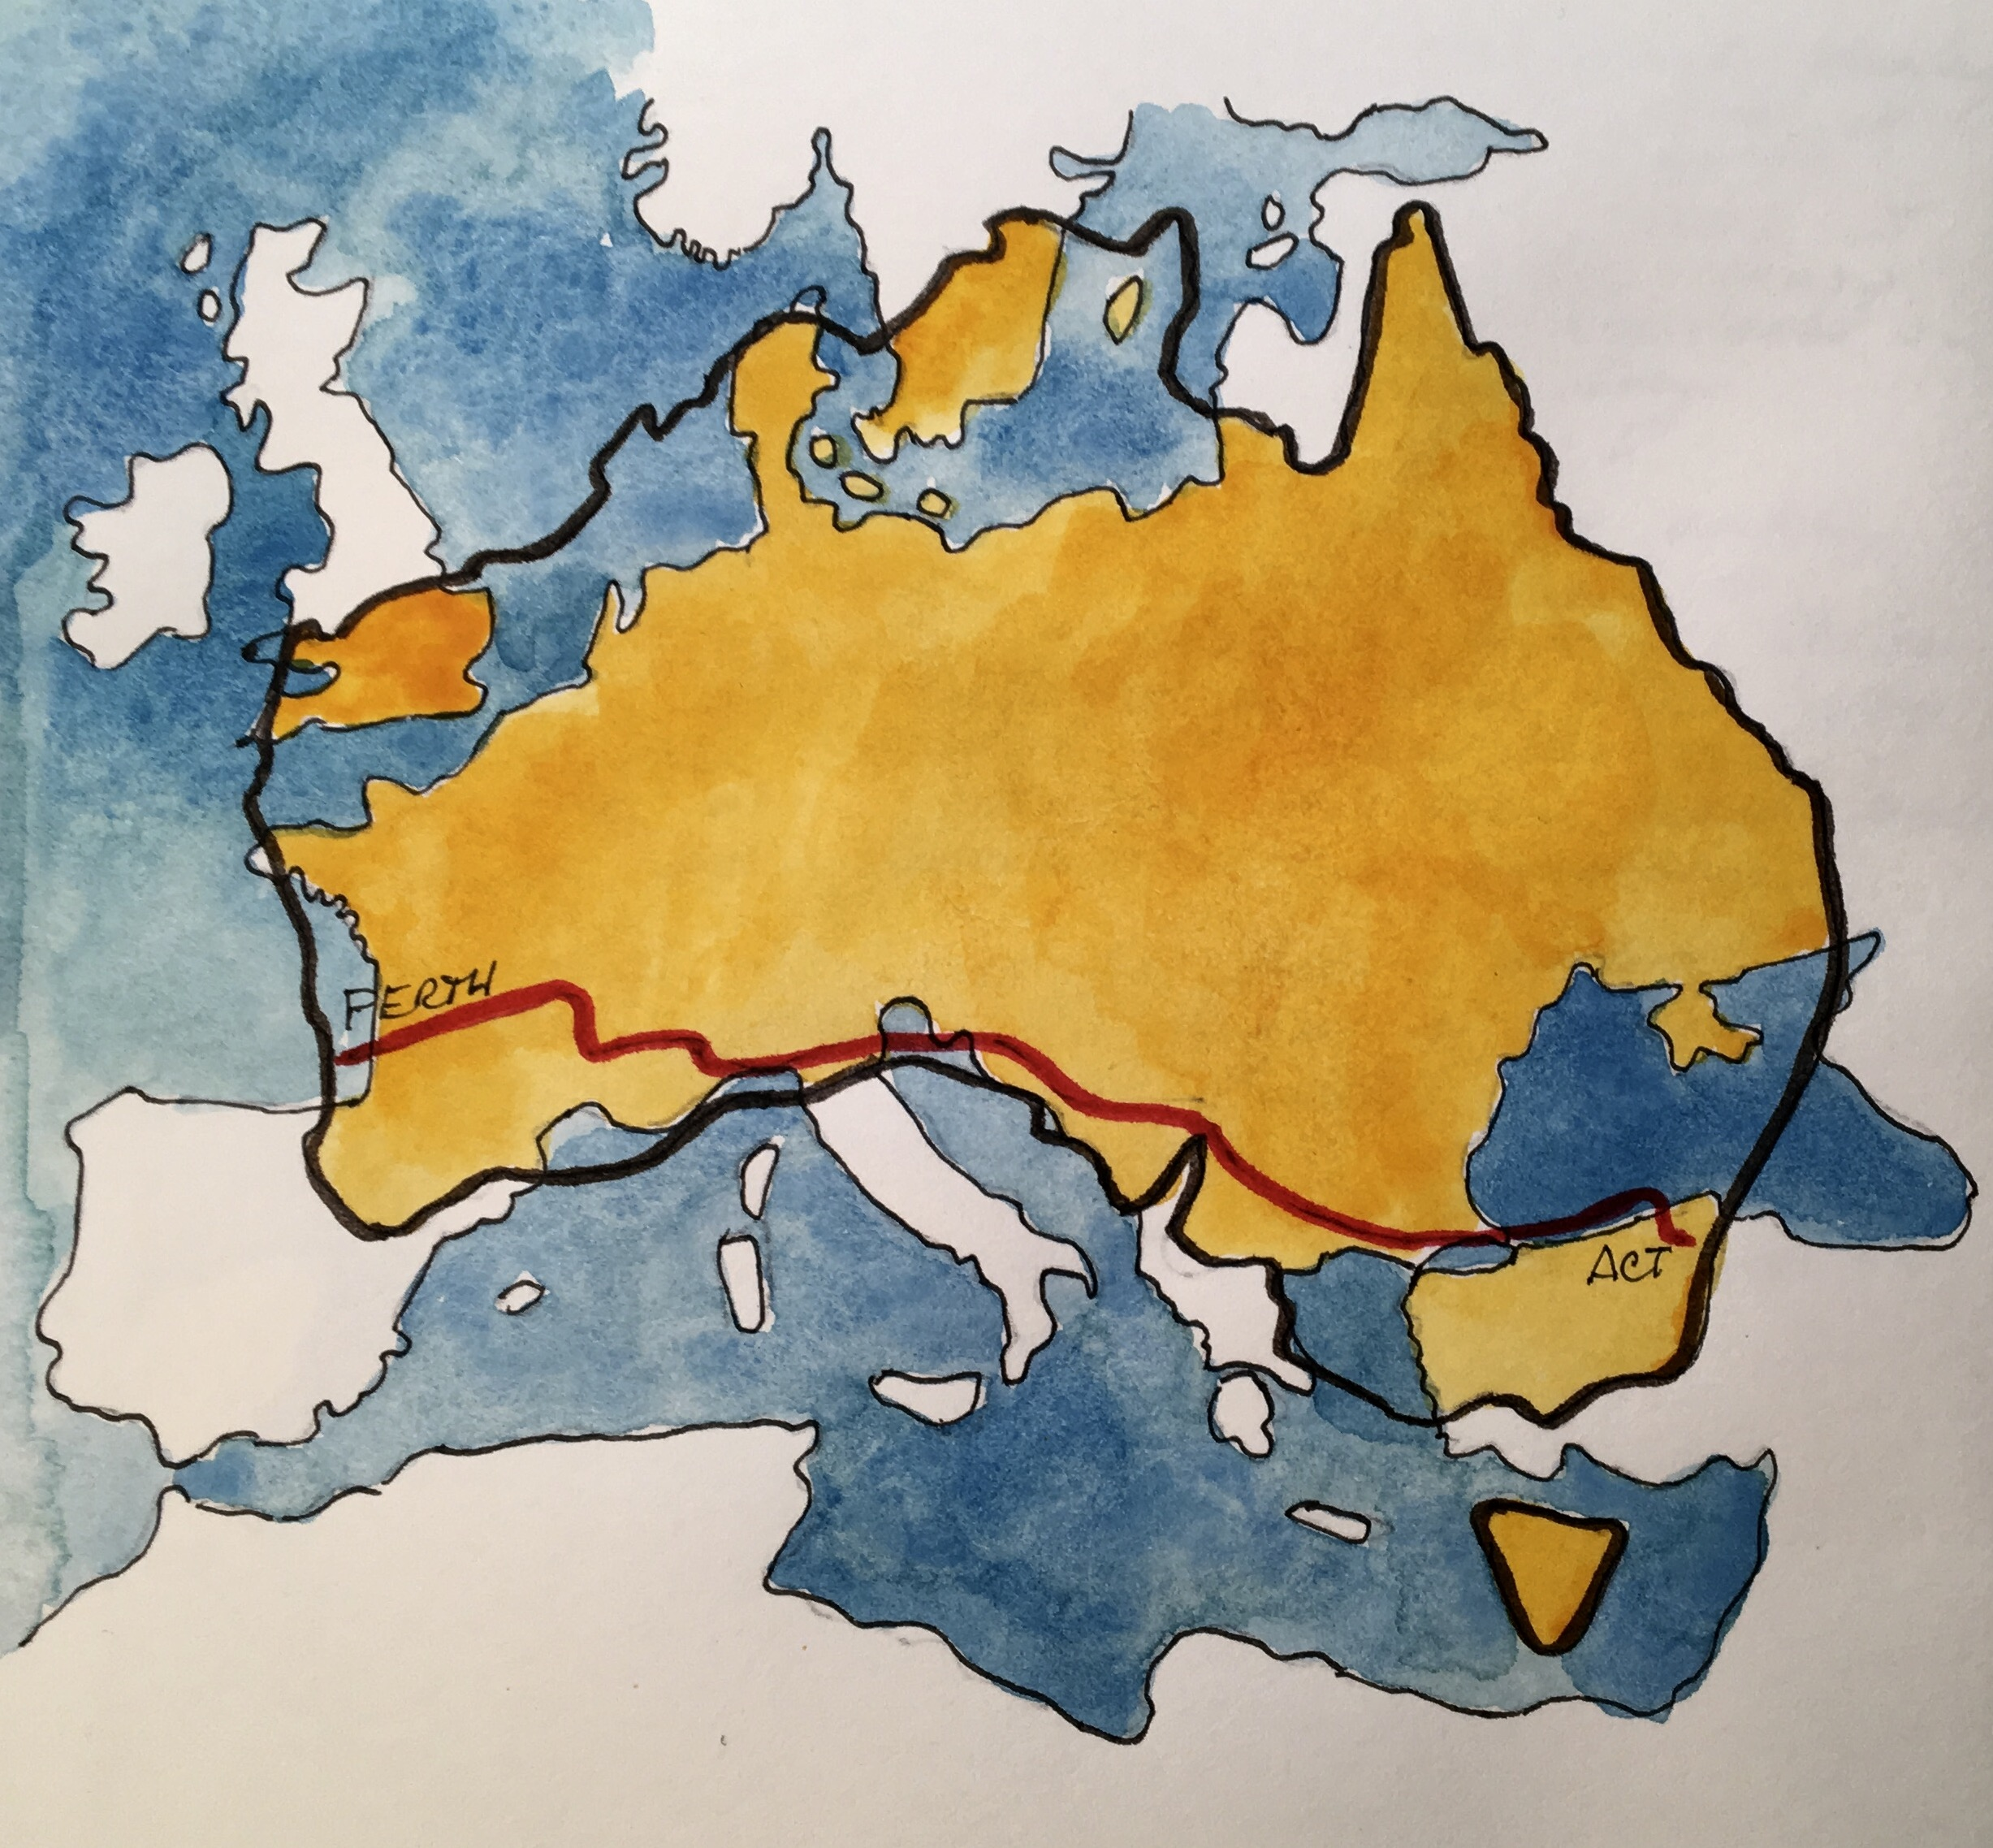 Australia Map In Europe.Map Of Australia Overlapping Europe Tonesandtints